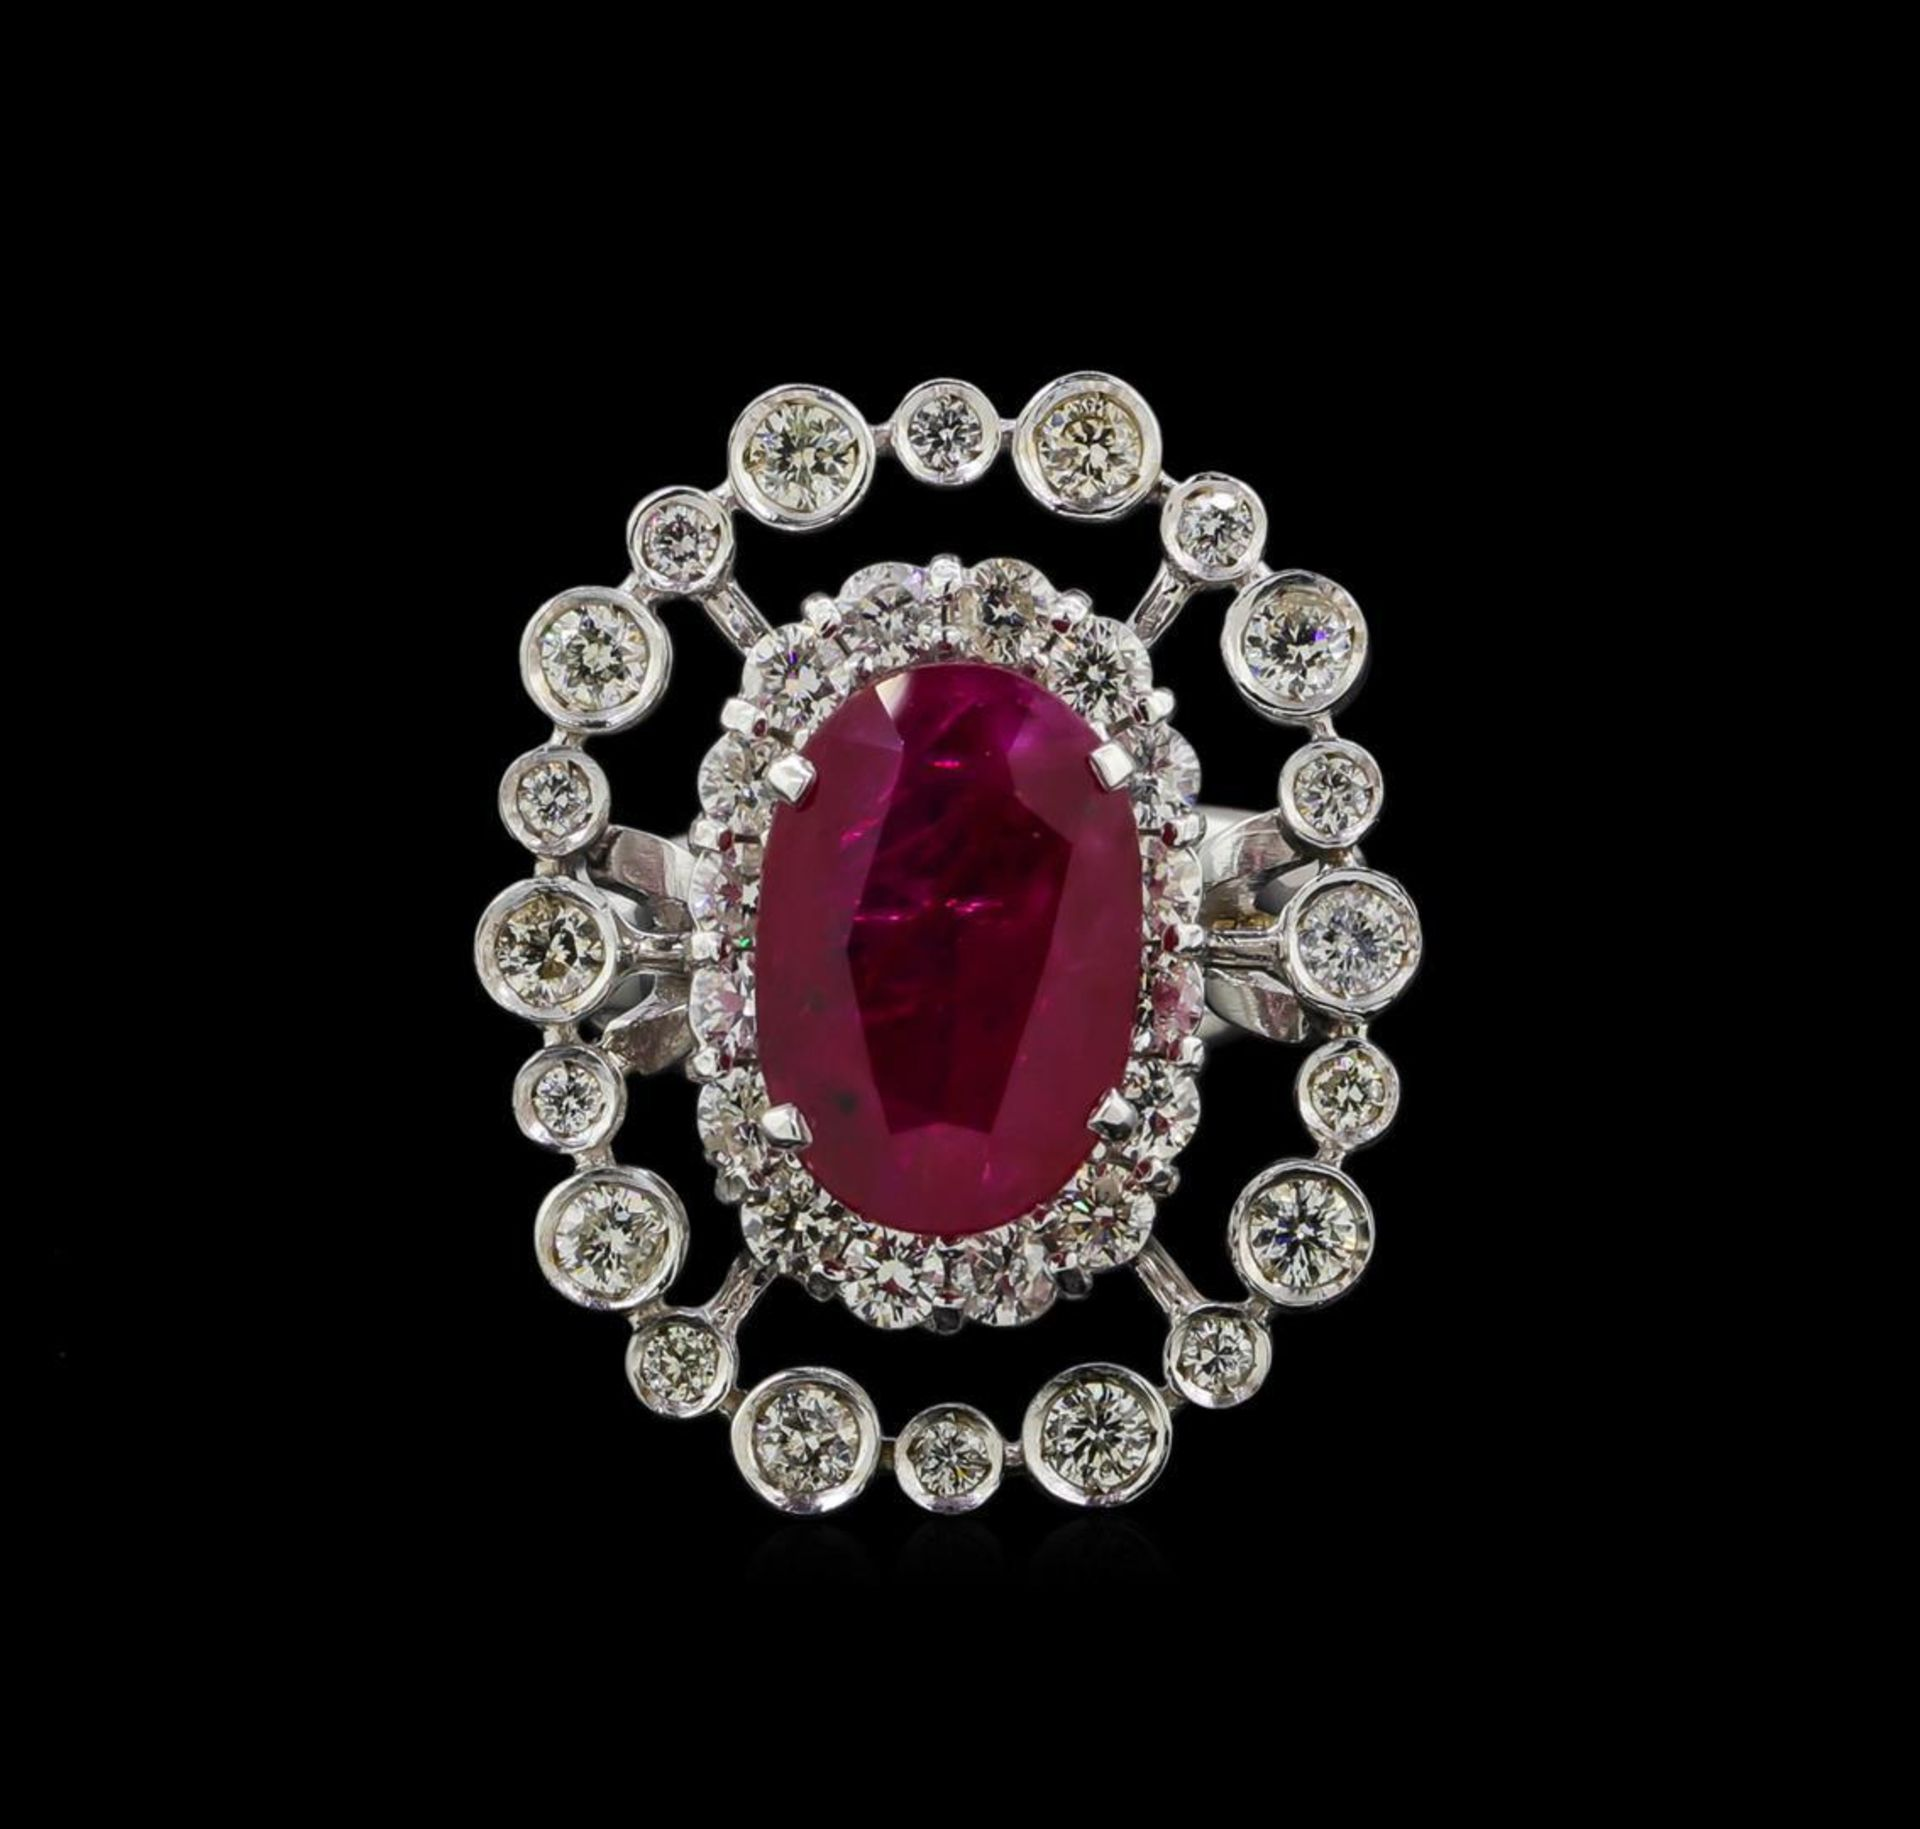 GIA Cert 4.22 ctw Ruby and Diamond Ring - 14KT White Gold - Image 2 of 6